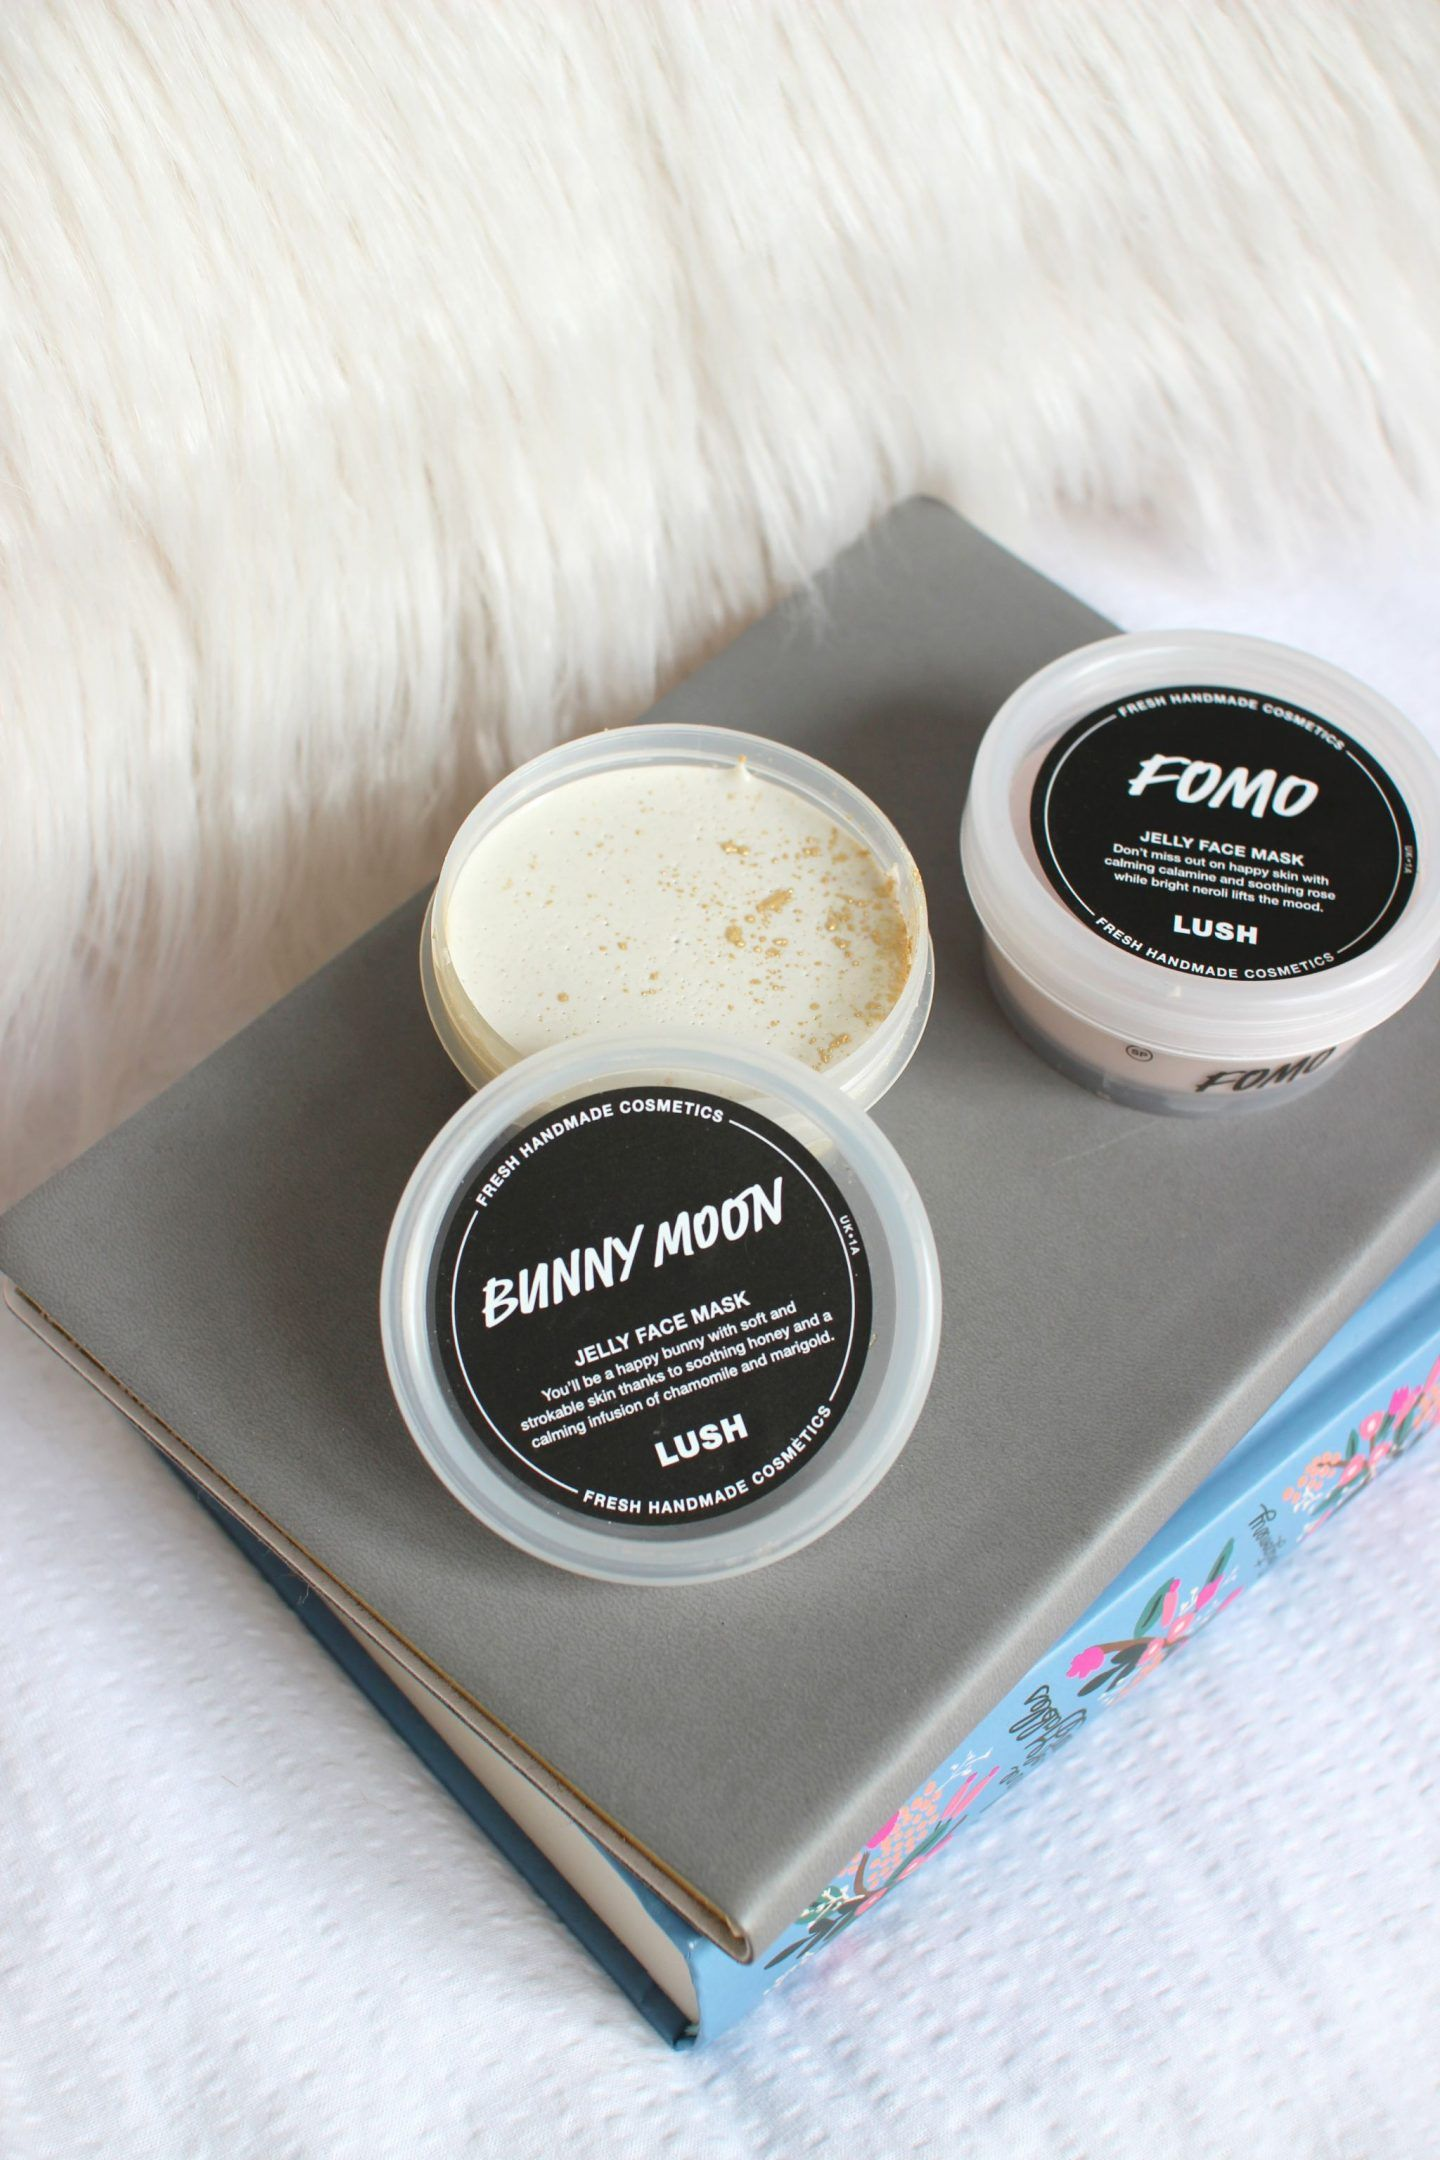 Lush Jelly Face Masks Review Bunny Moon And Fomo Selfcare In Jellys Pure Mask Power Soap